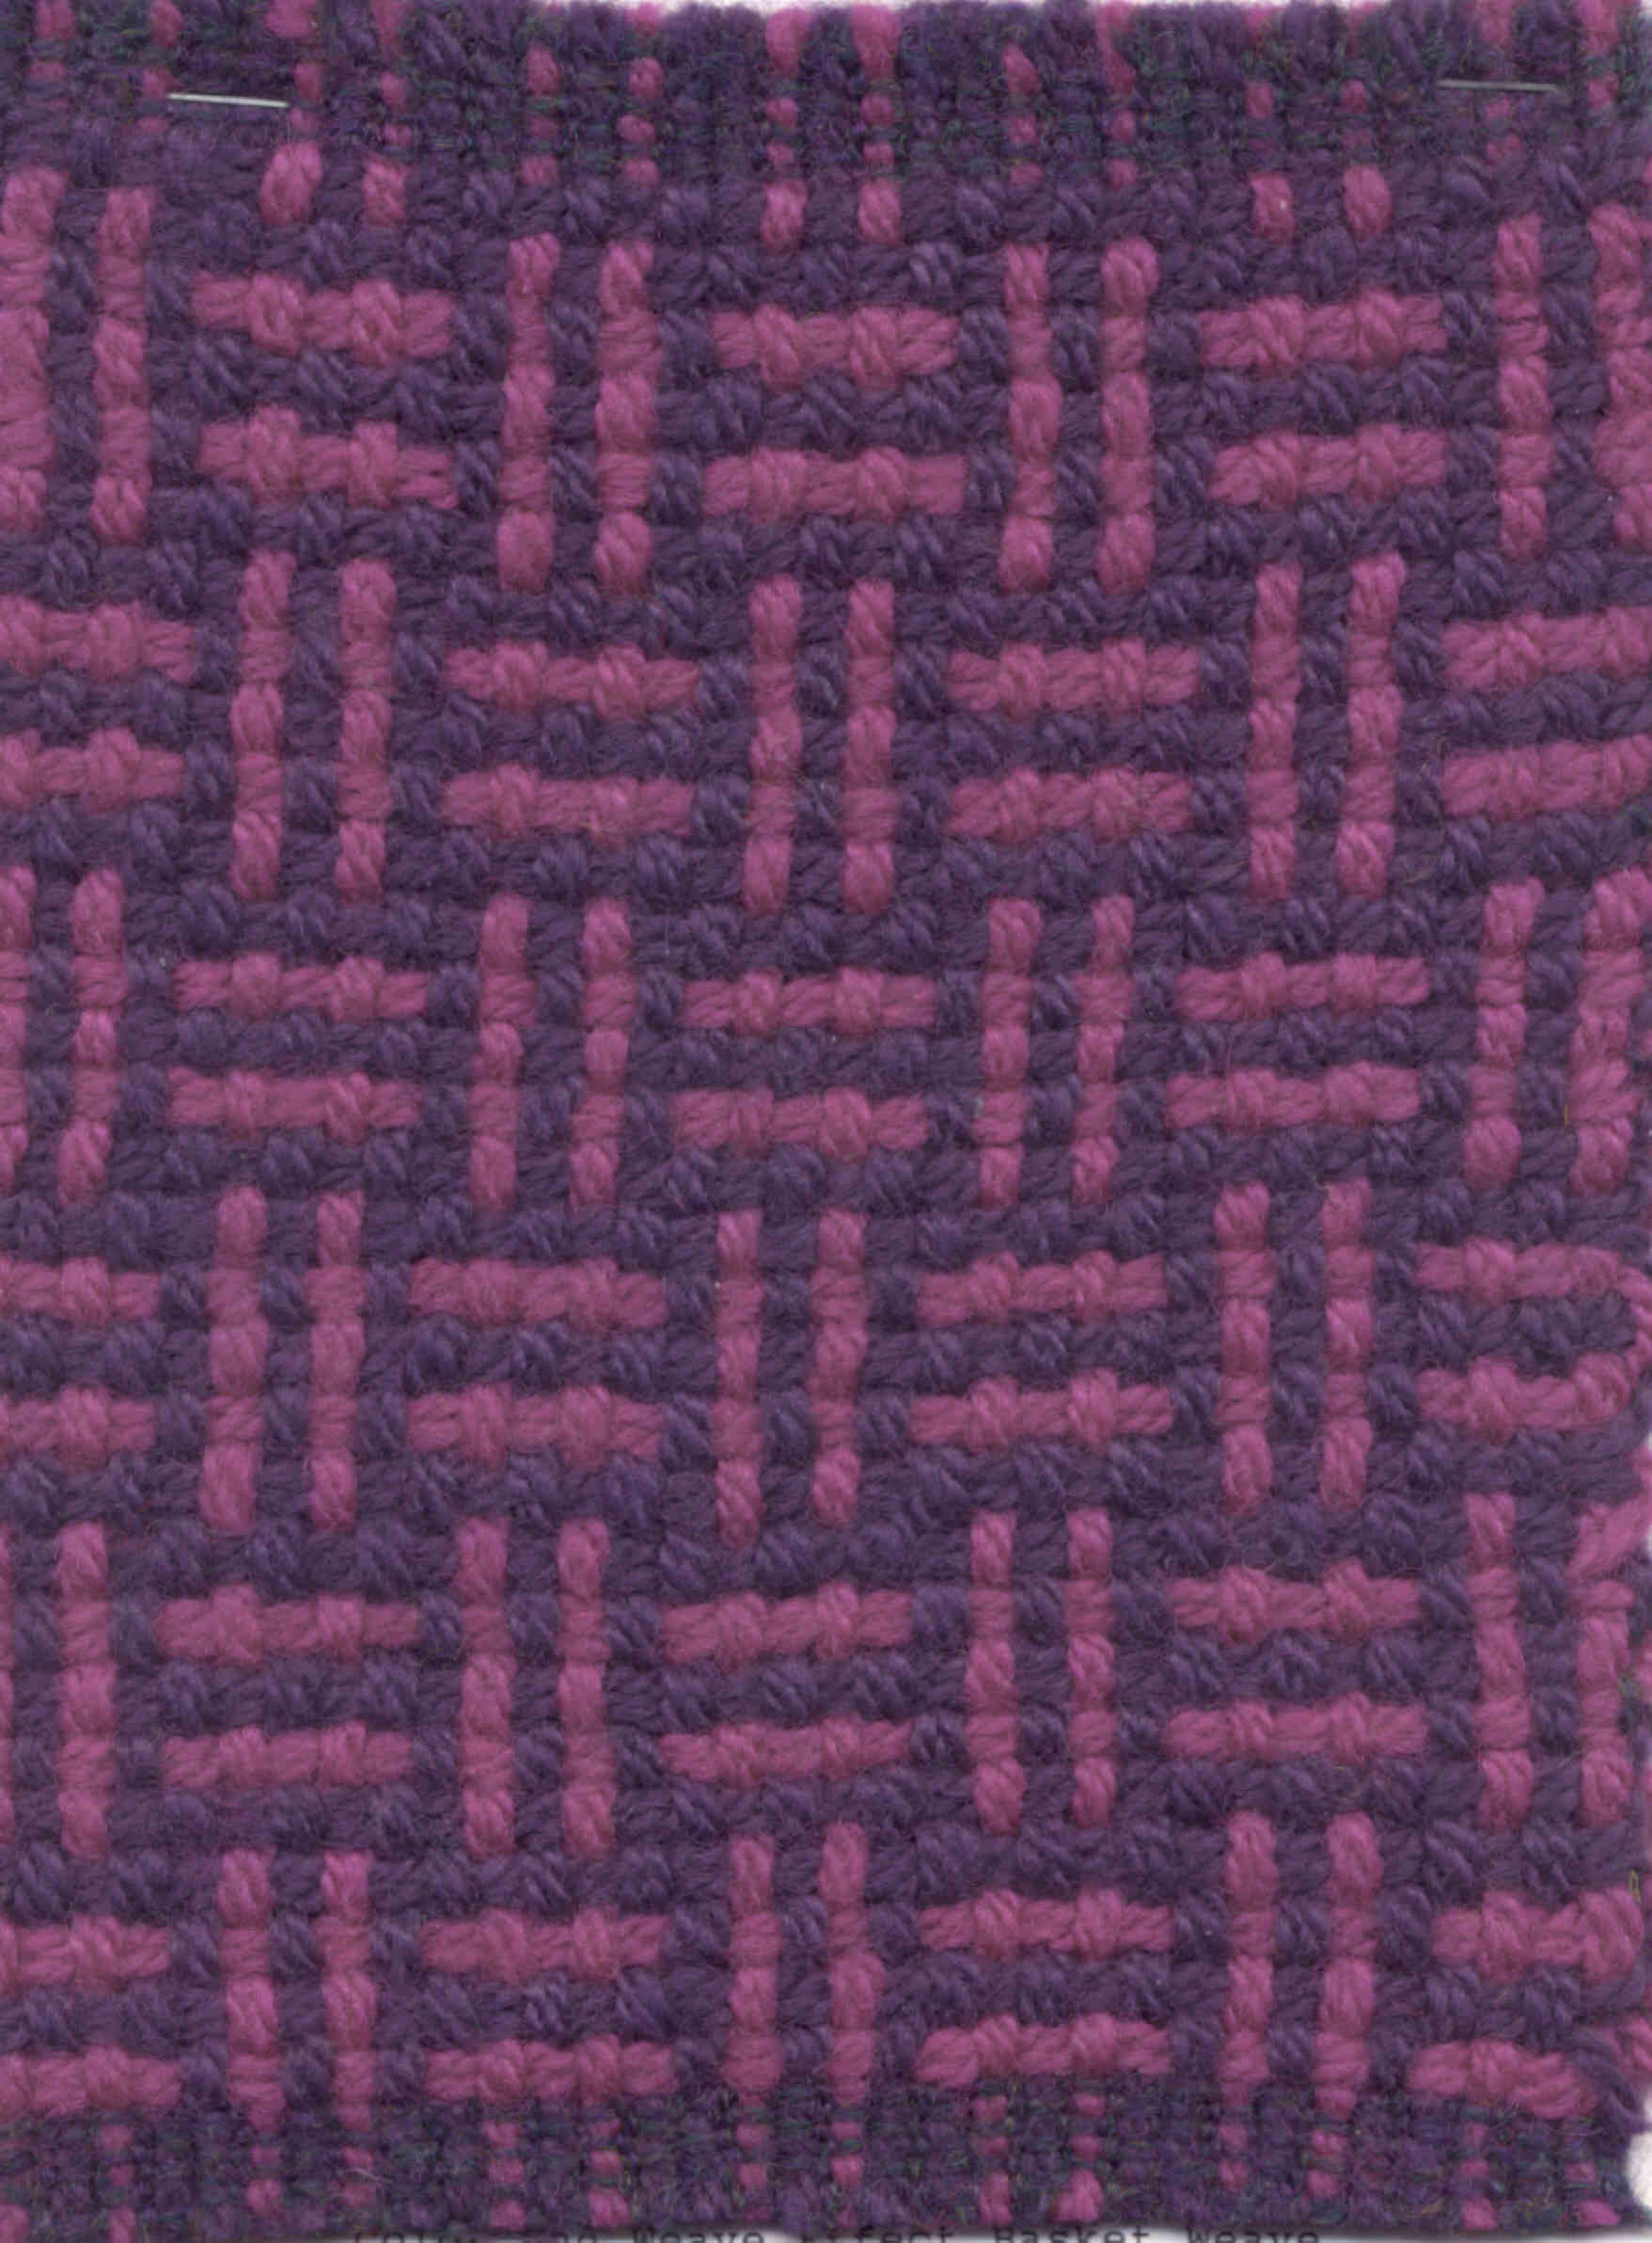 How To Weave A Basket From Fabric : The weavers guild of springfield